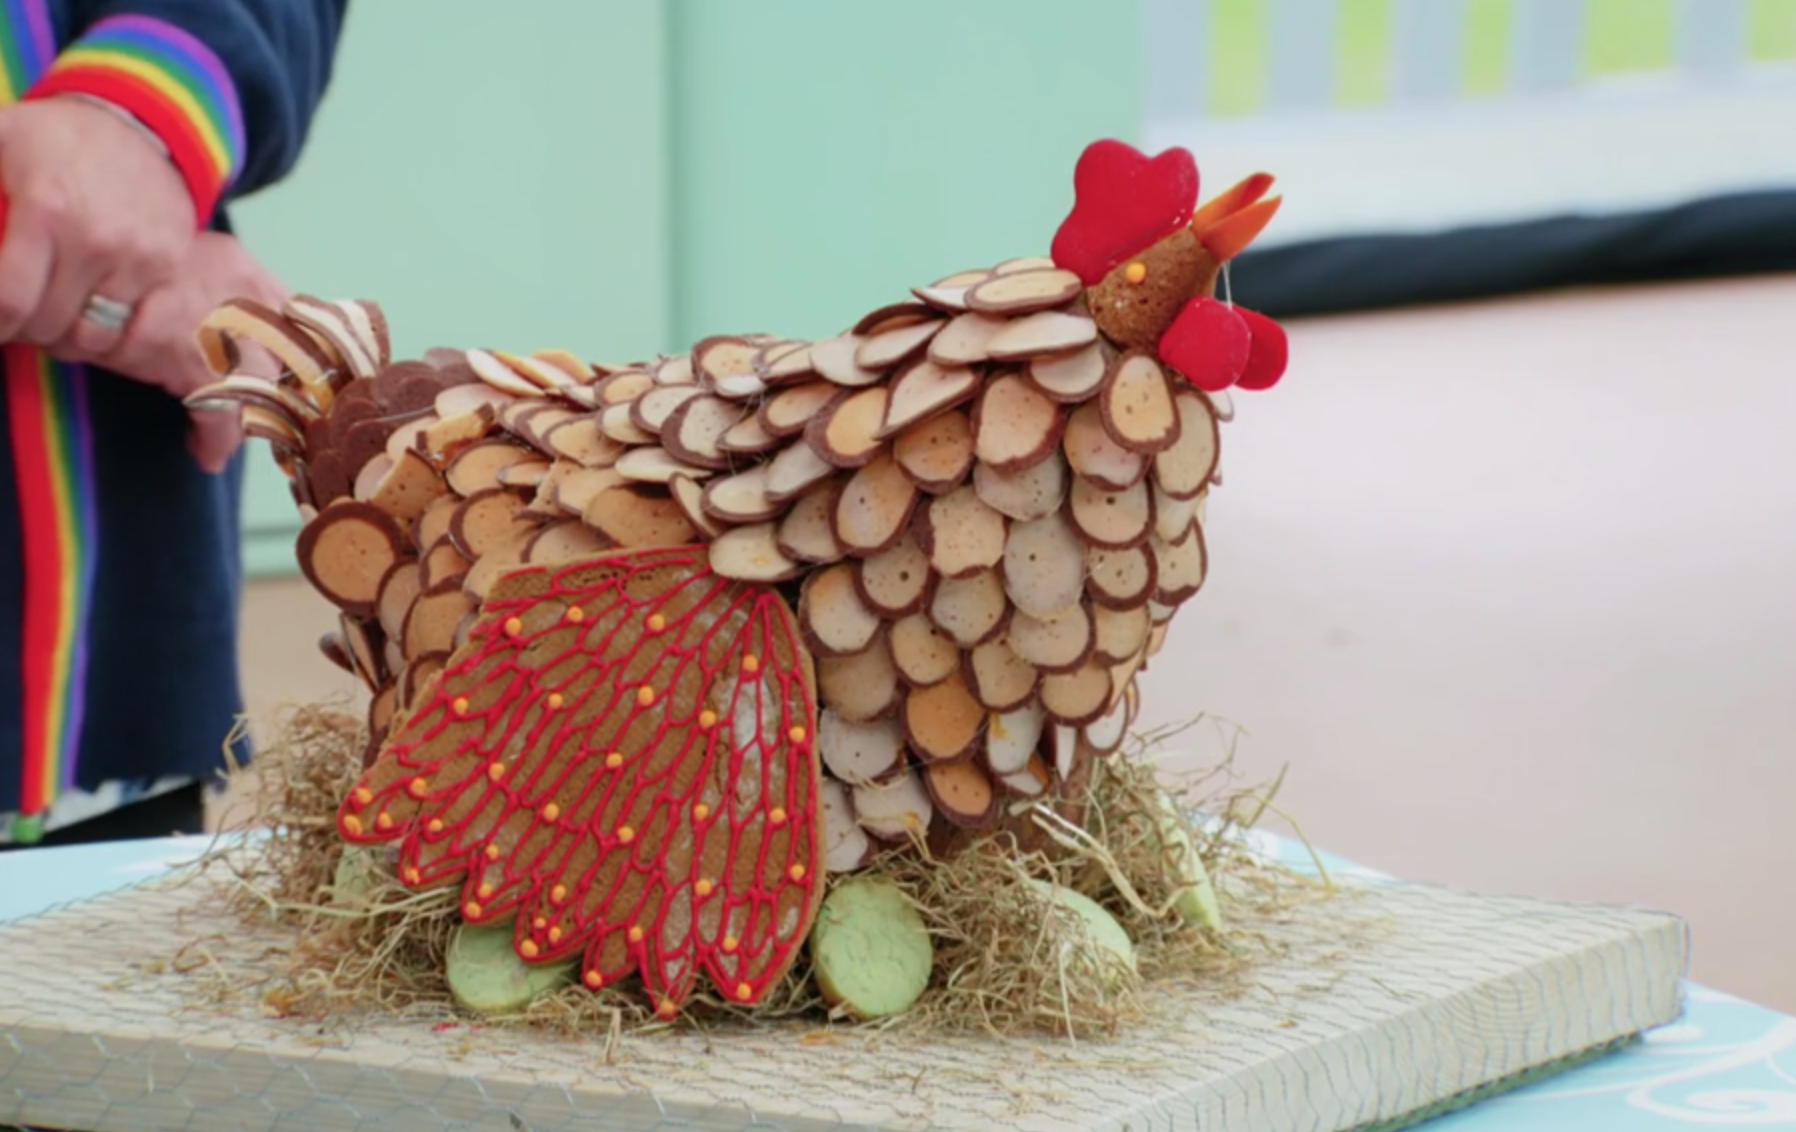 Great British Bake Off 2019 continues with Rosie's chicken made of biscuits